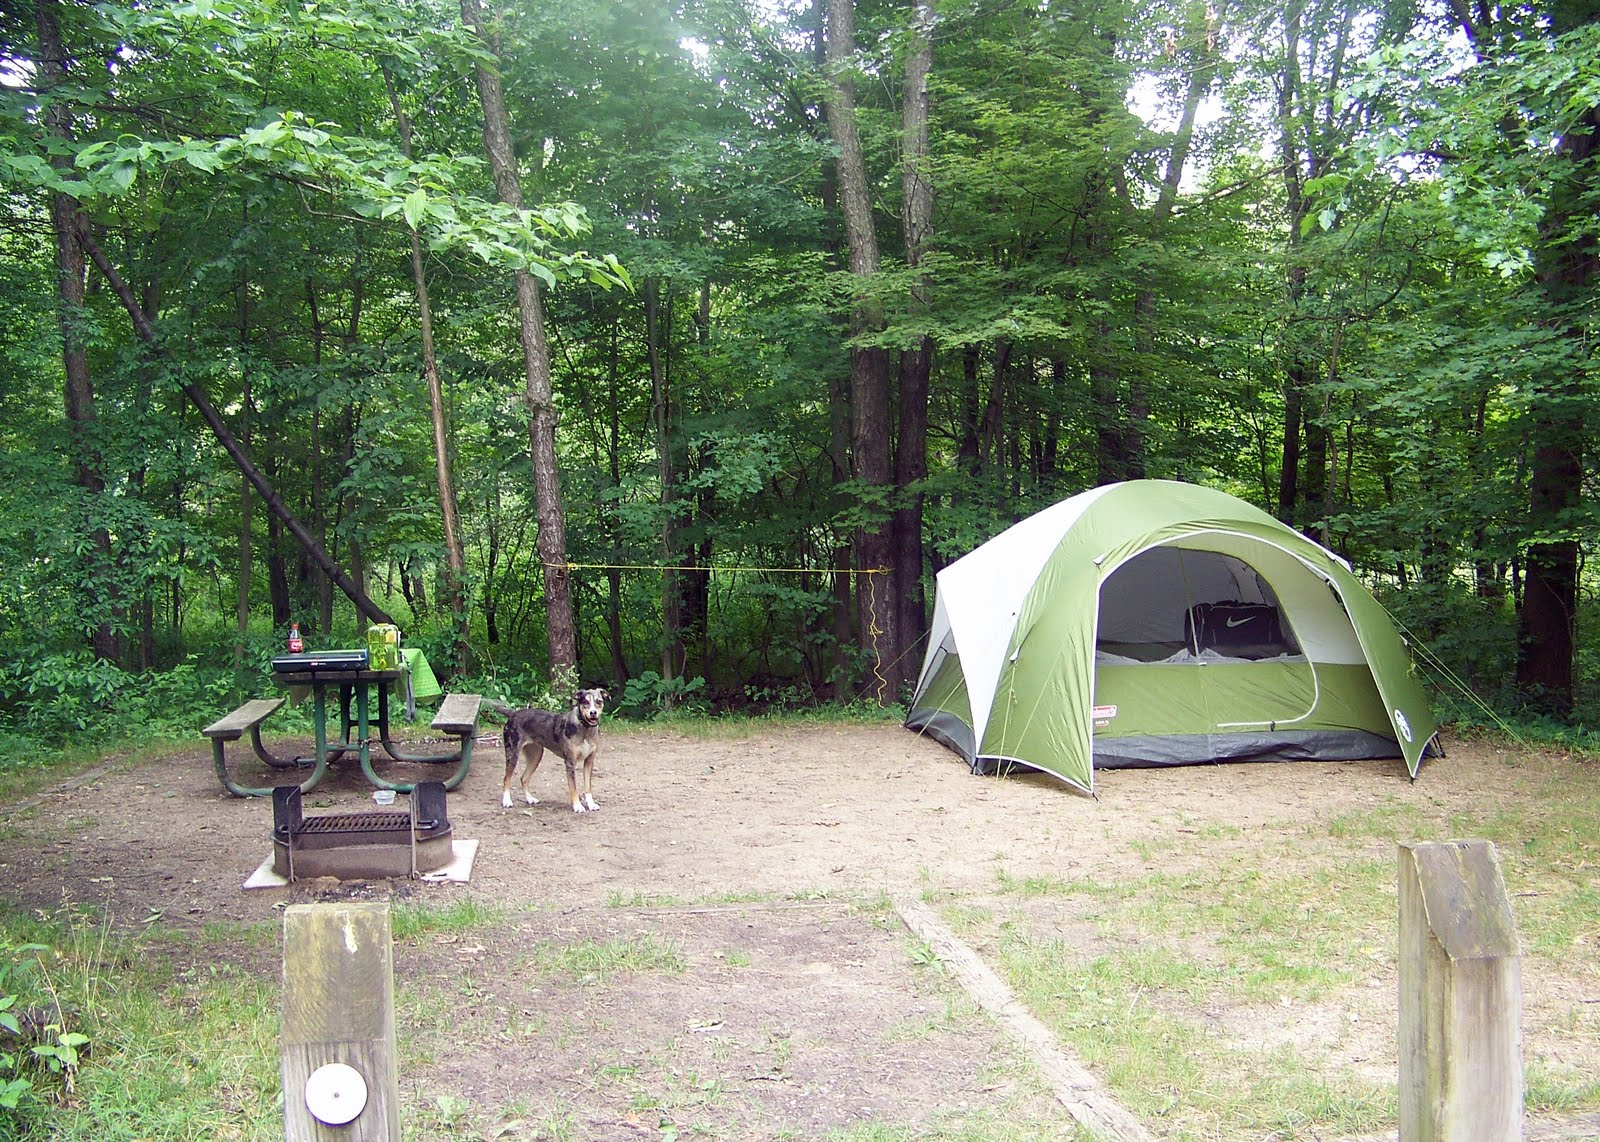 tlee blogs: Indiana Dunes National Lakeshore